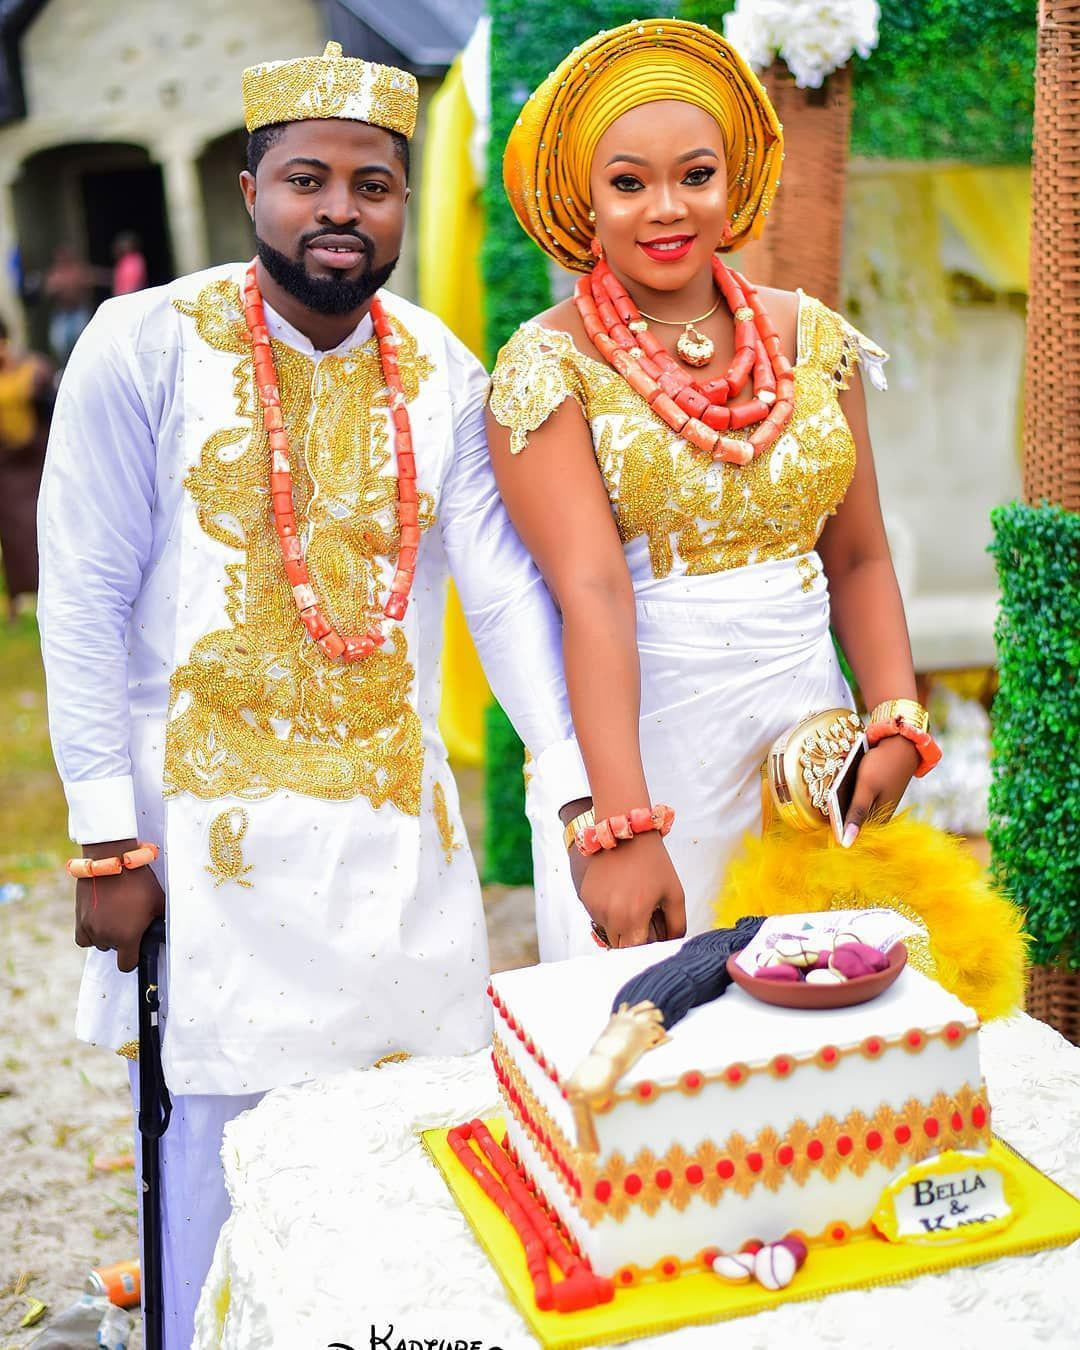 Amazing Traditional Wedding Fashion Outfit By Mandy Lumona 2020 Traditional Wedding Attire African Wear Dresses African Wedding Attire